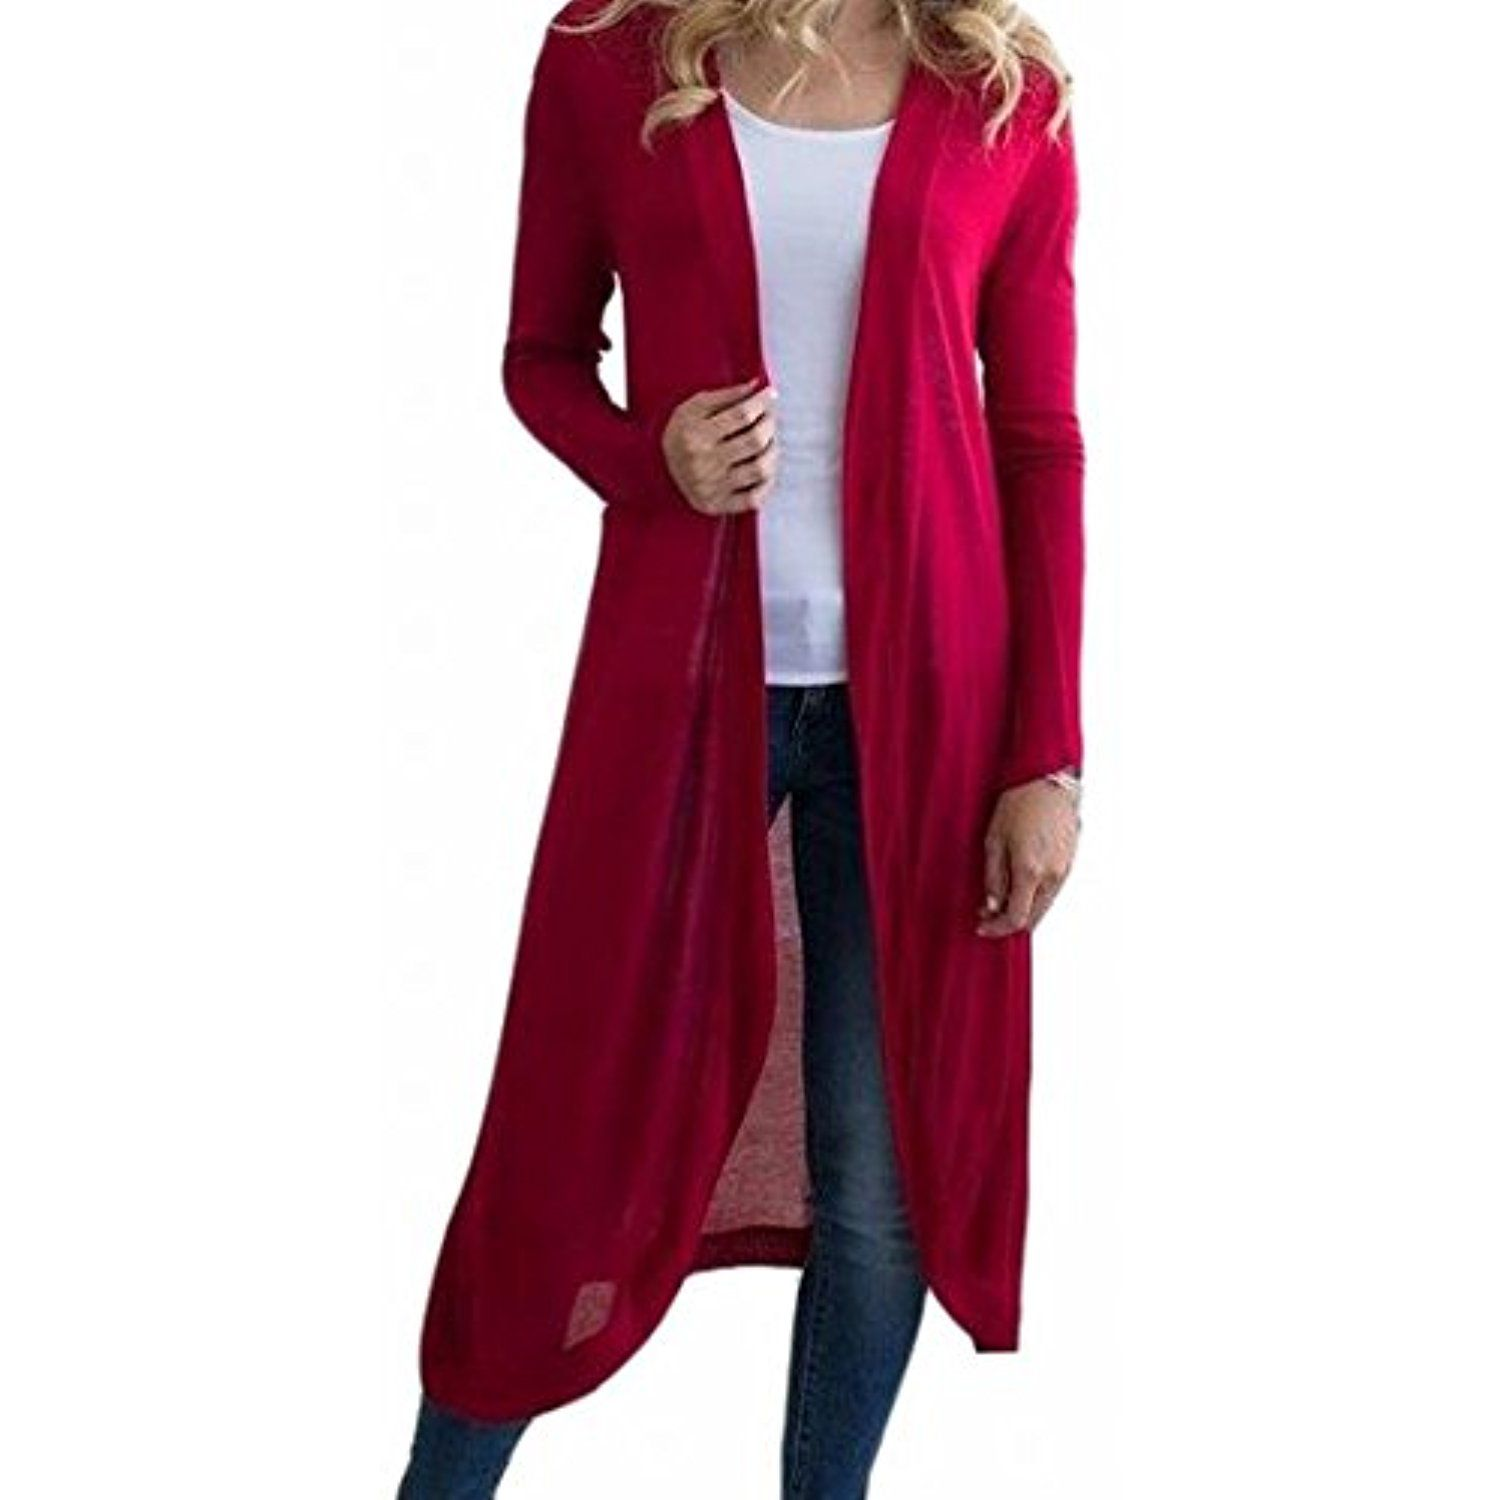 Women's Long Sleeve Ligthweigth Open Front Cardigan Sweater * You ...